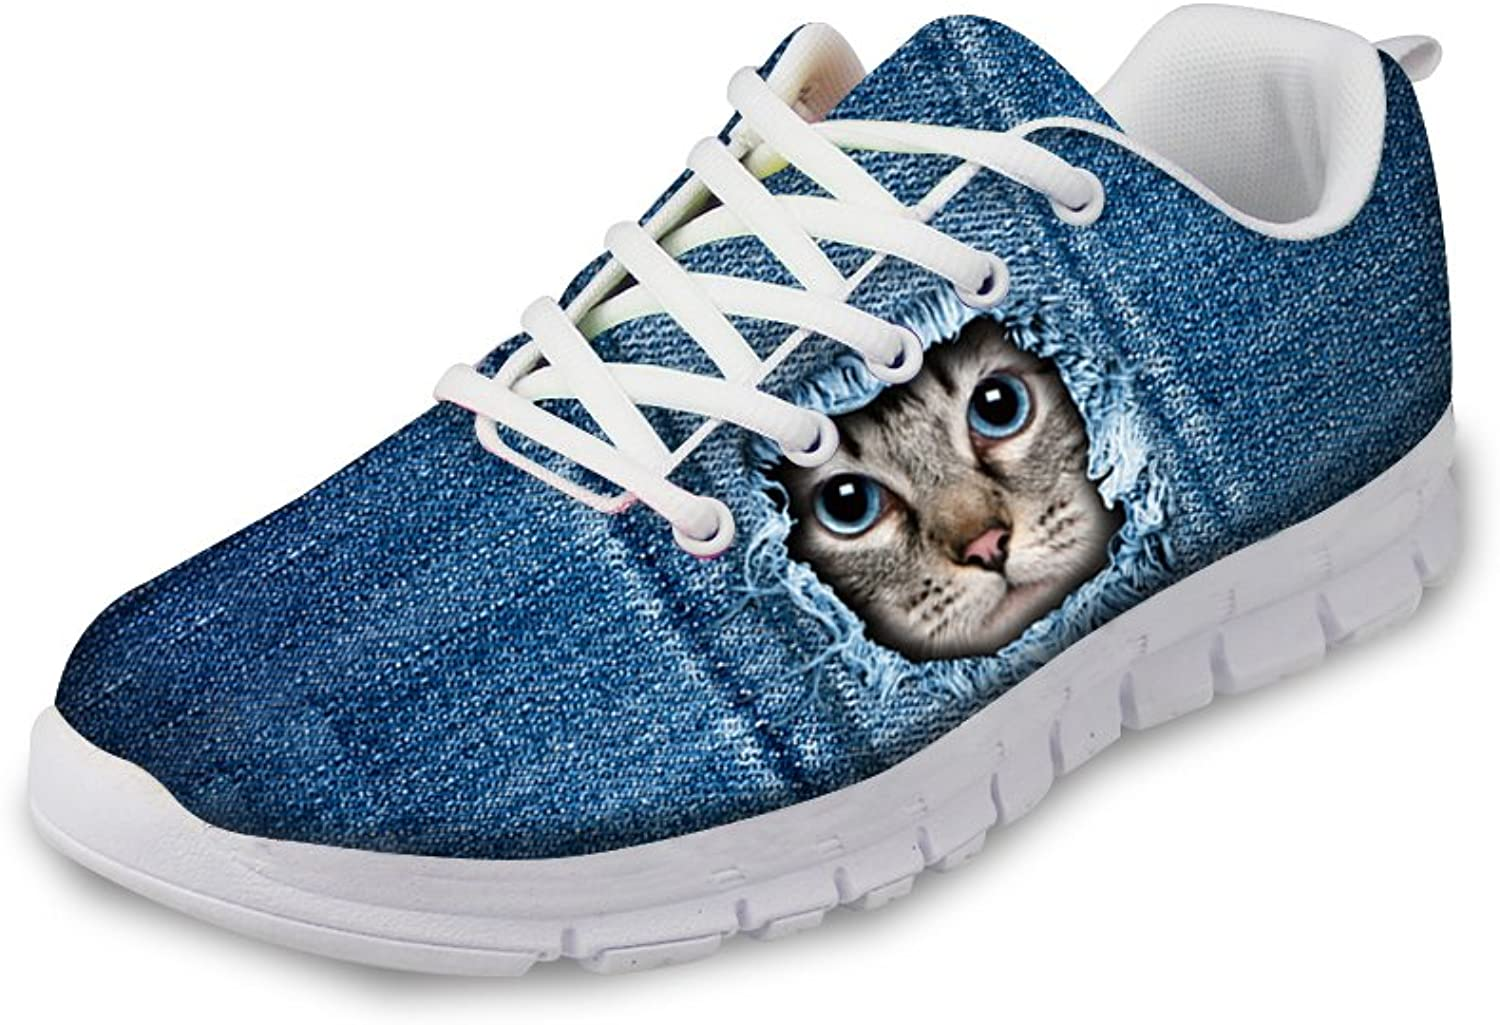 Cute 3d Denim Cat Pattern Durable Women's Girls Sneakers Lightweight Breathable Running shoes